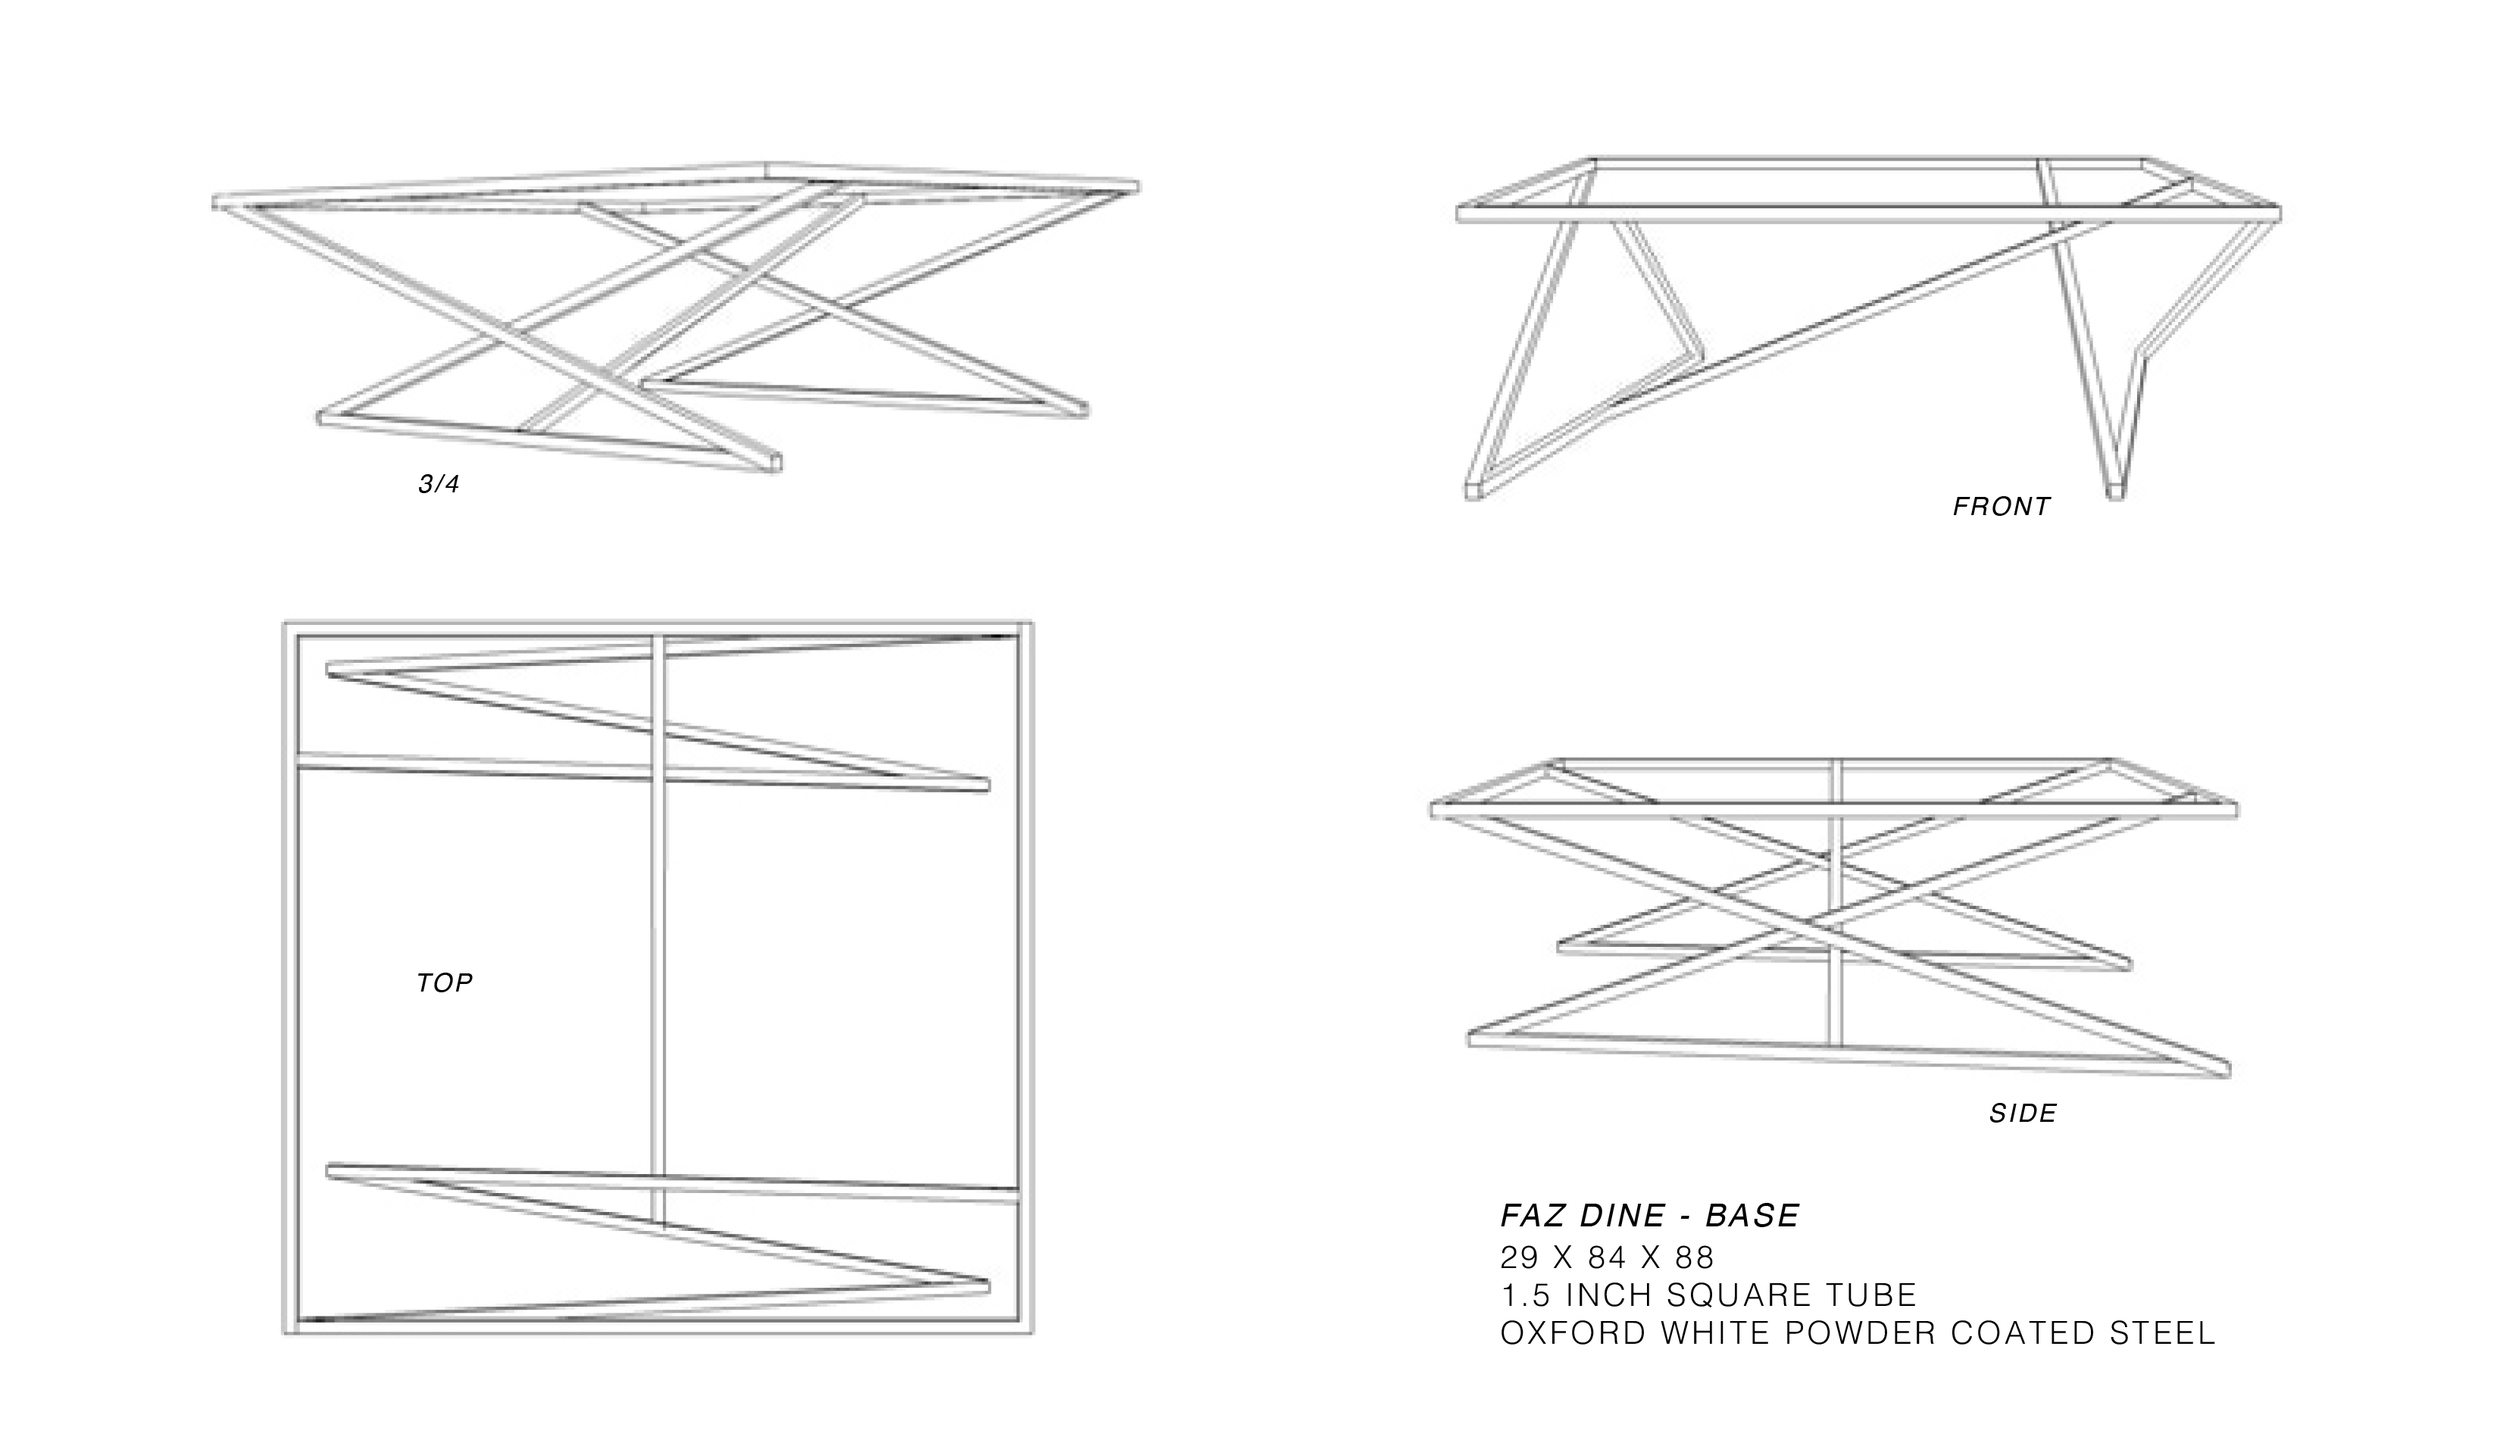 Table Base - Proposed Design by Constructed Matter, Inc.